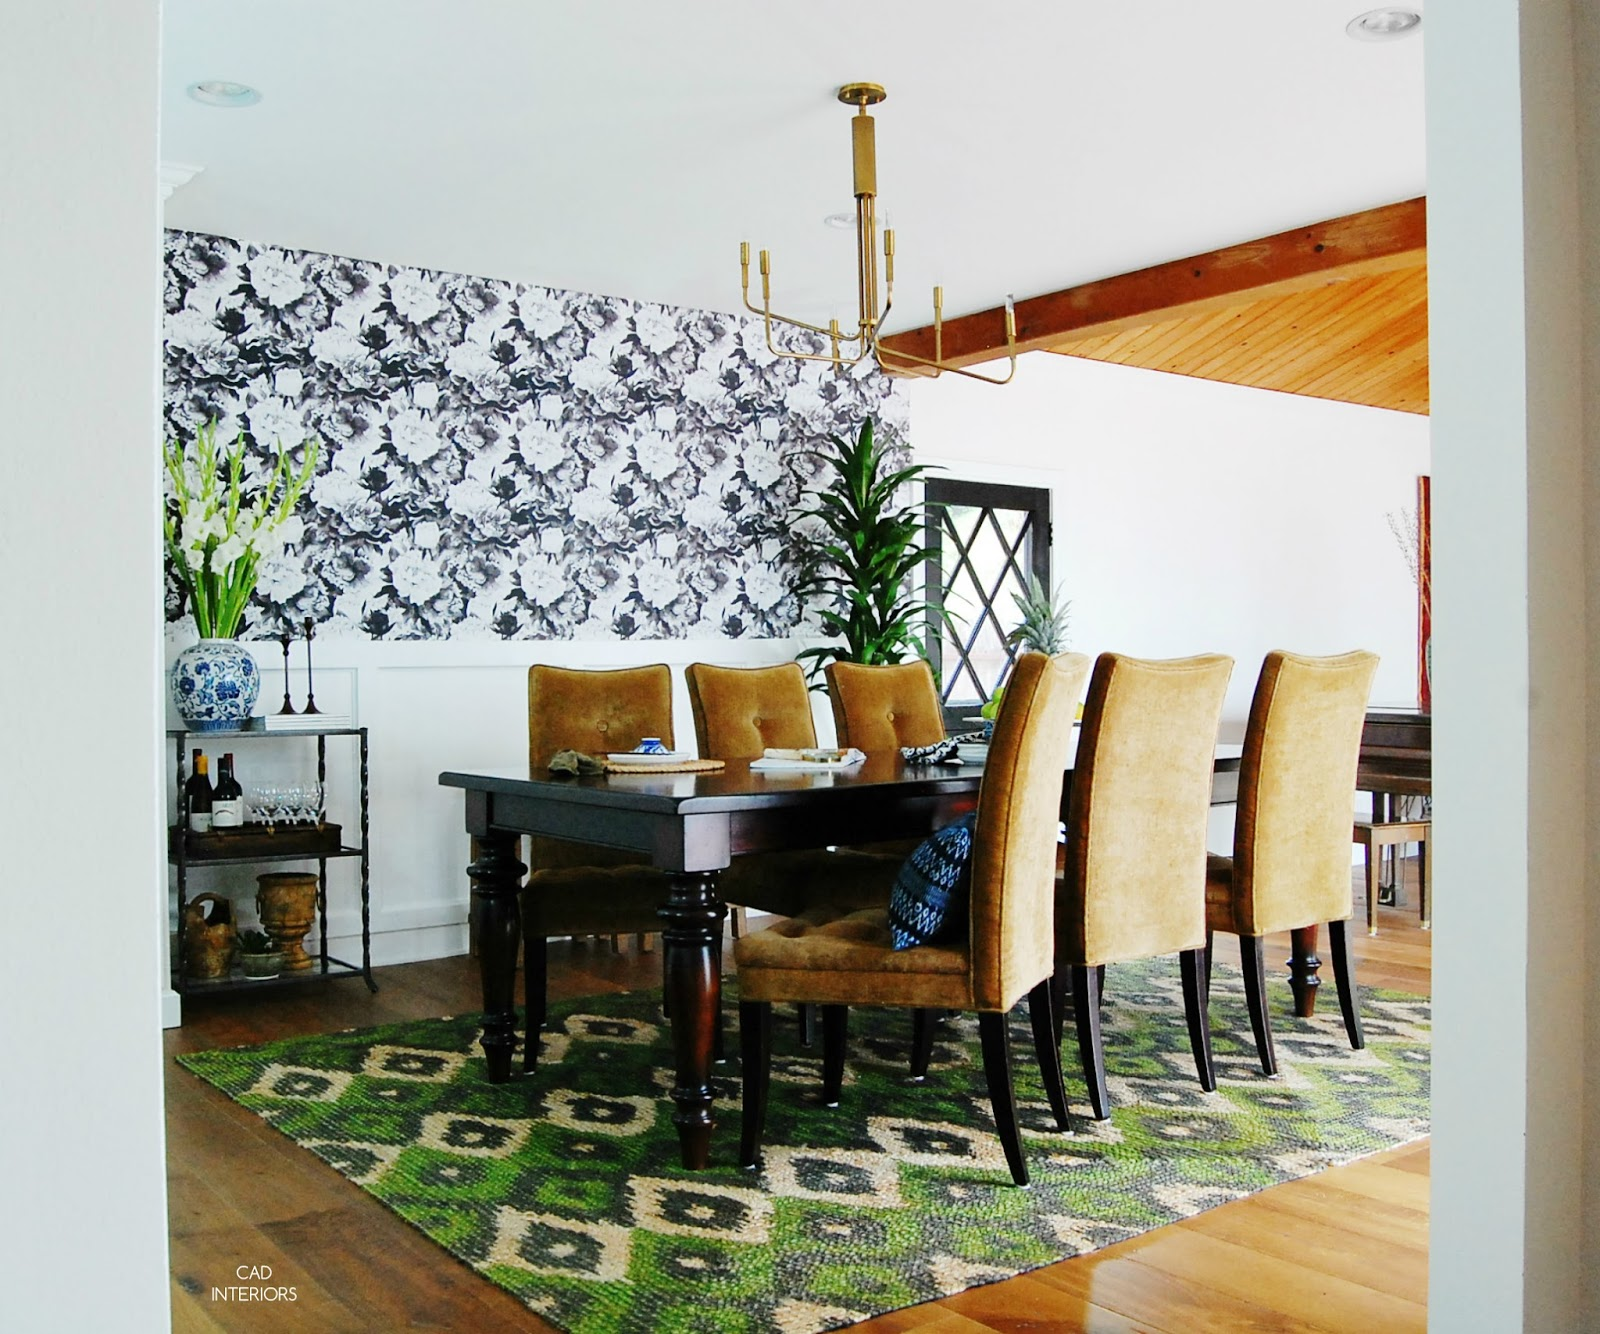 mid century modern farmhouse dining room interior design one room challenge floral wallpaper jute rug